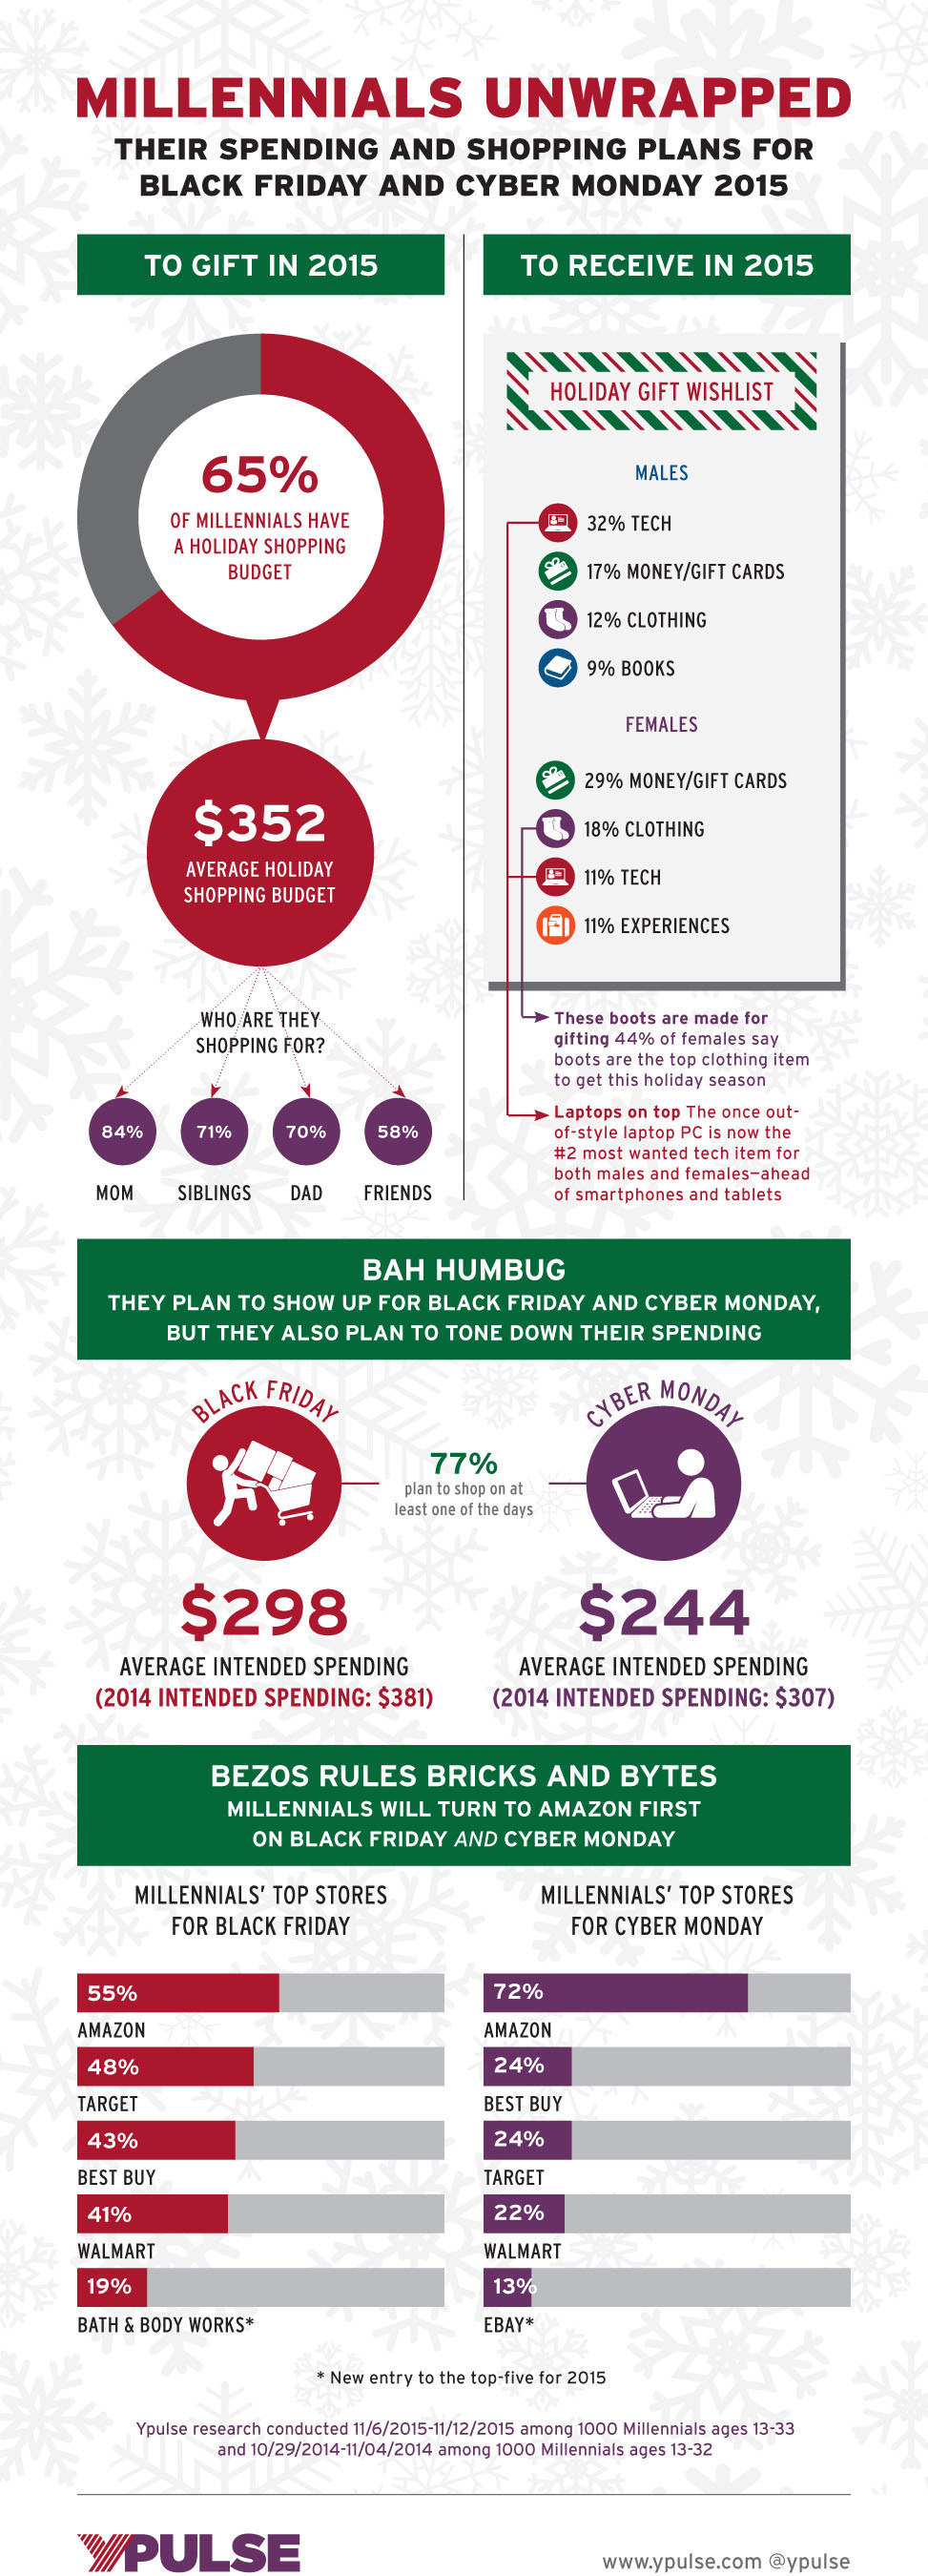 Ypulse releases 2015 Millennial Holiday Shopping stats: $49.5 billion in planned spending on Black Friday / Cyber Monday by those aged 13-33.